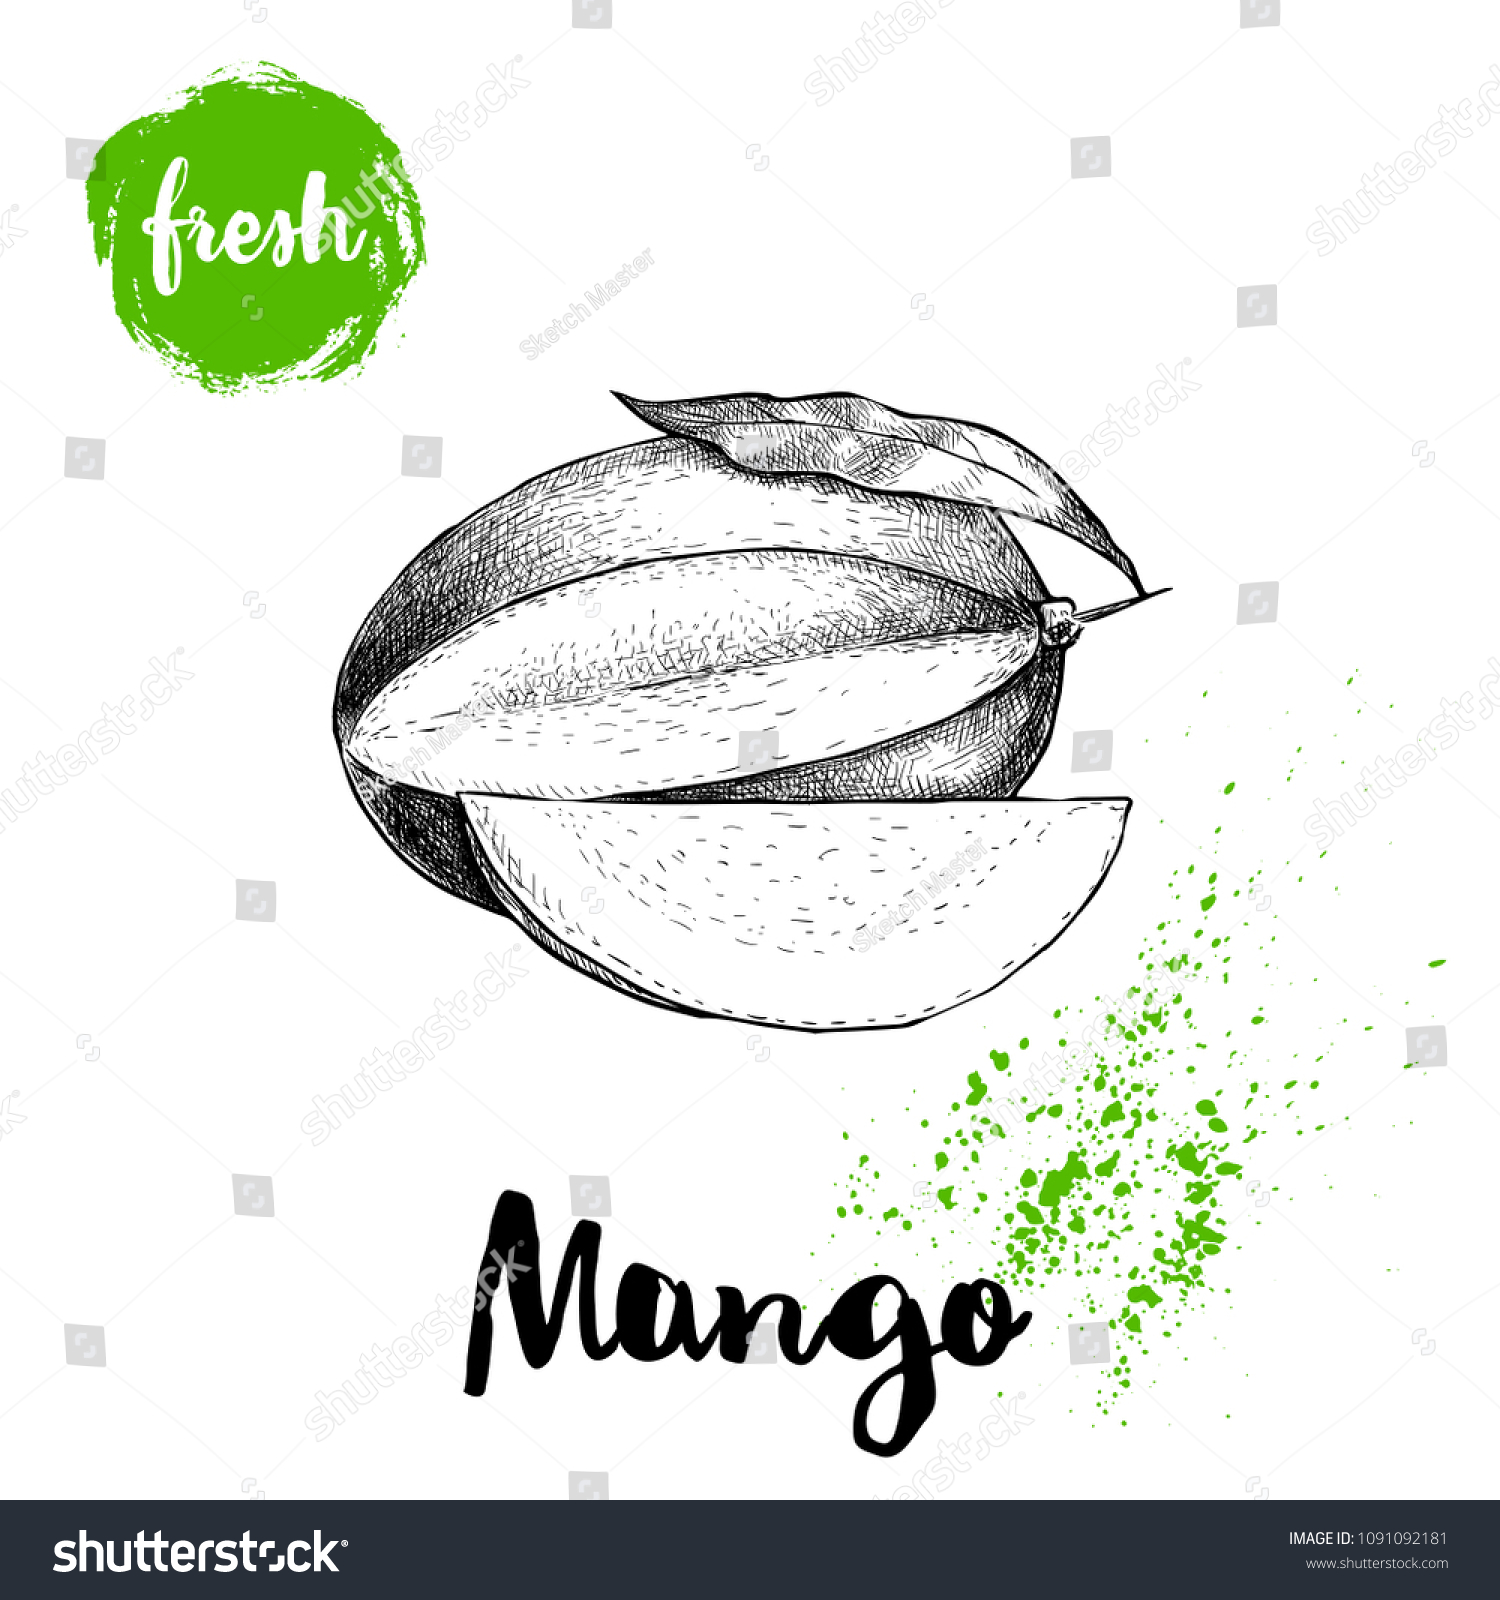 Mango fruit sketch style vector illustration hand drawn poster exotic fruit with leaf and